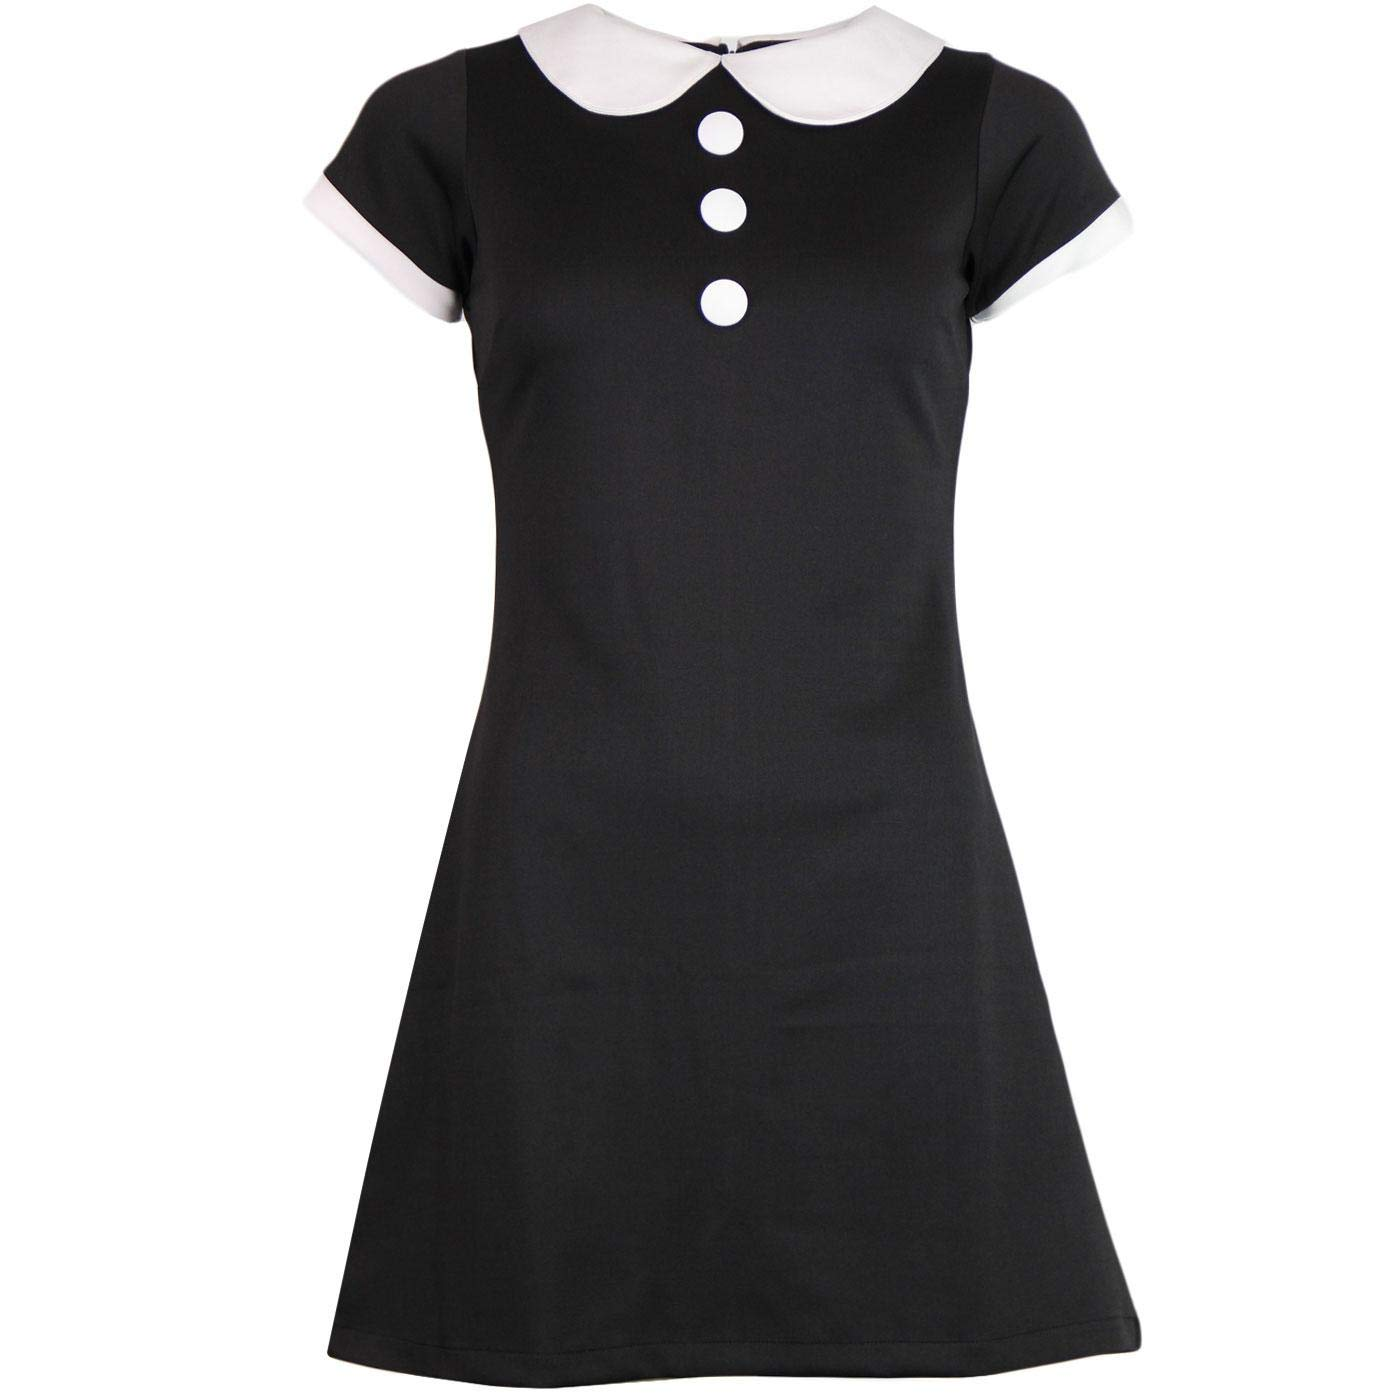 1960s Style Dresses, Clothing, Shoes UK Madcap England Dollierocker Retro 60s Mod Peter Pan Collar Jersey Mini Dress £39.99 AT vintagedancer.com